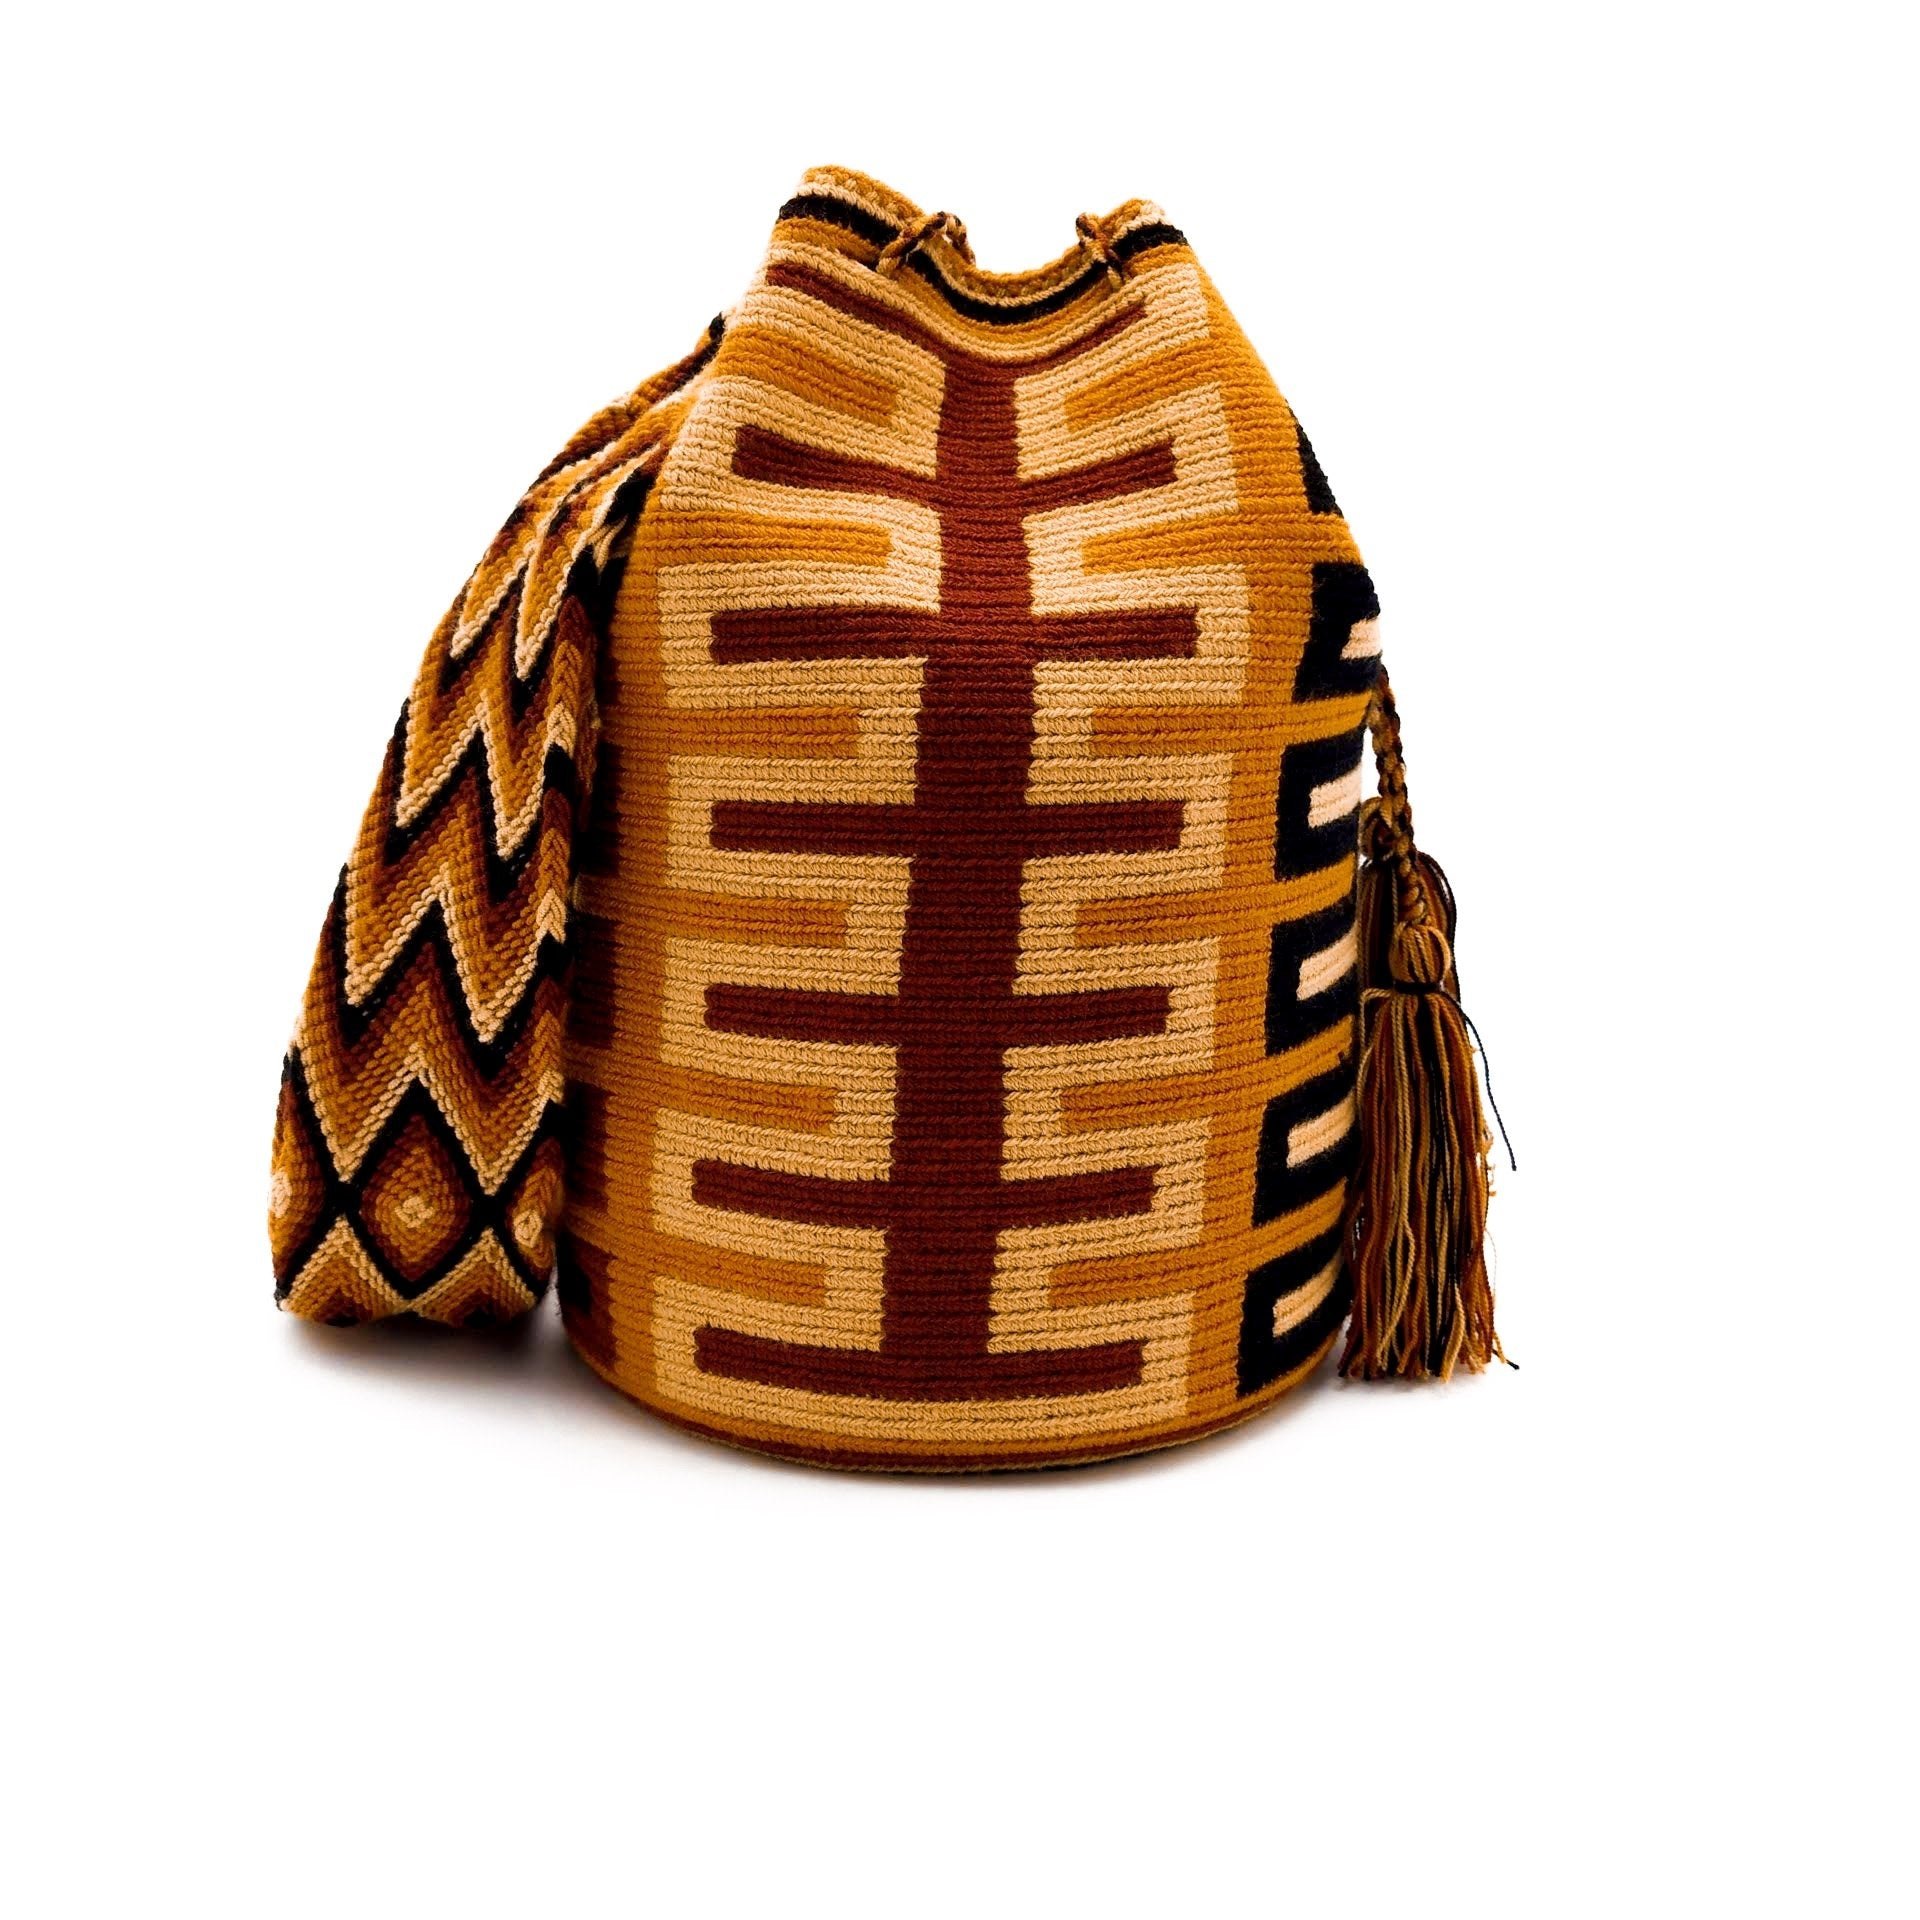 Front view of a pretty Wayuu Mochila bag with an awesome pattern in earthy colors such as Amber, Tan, Carmine, and Black